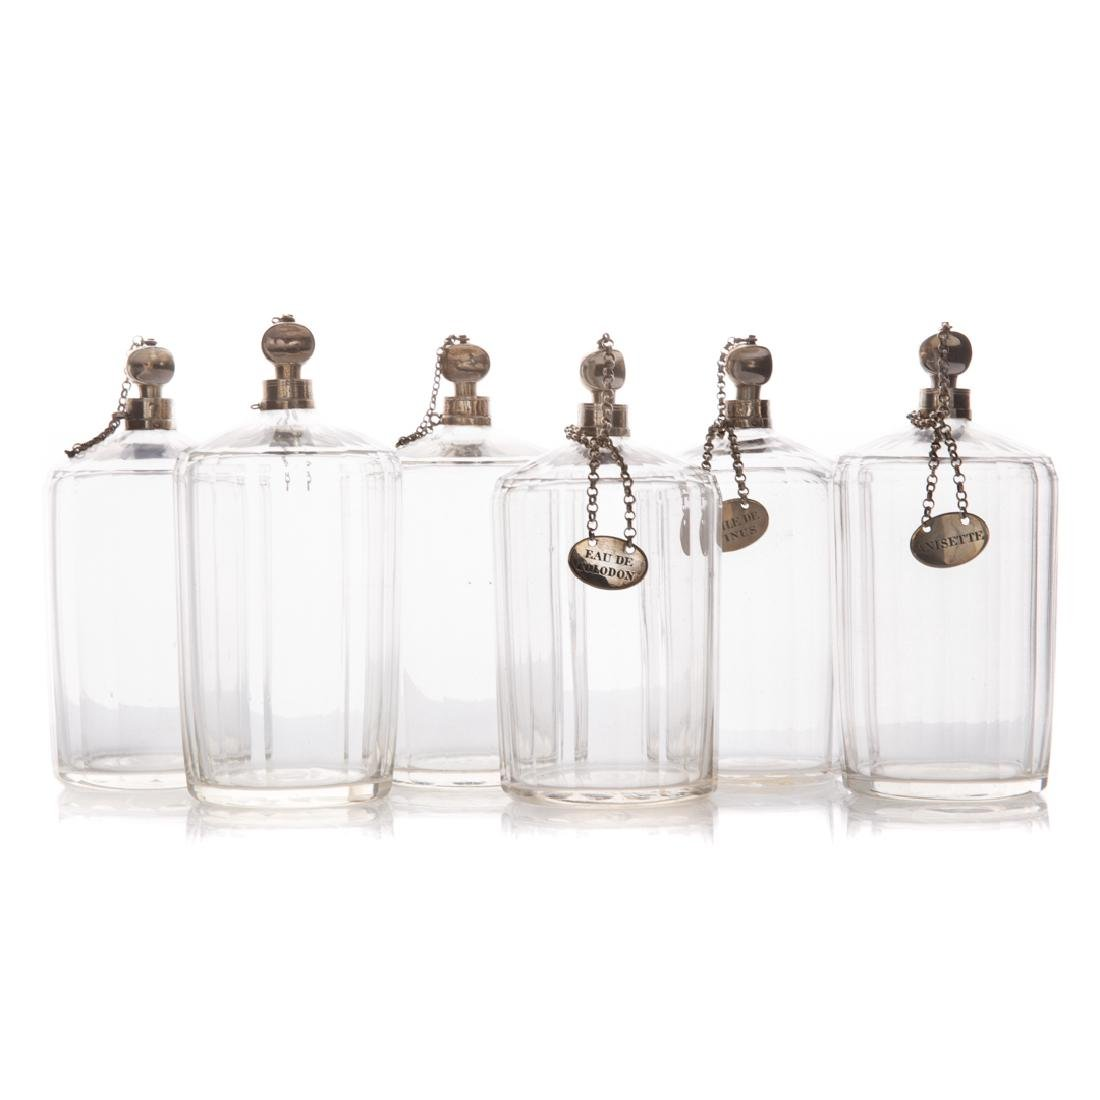 French silver-mounted crystal scent set - 3